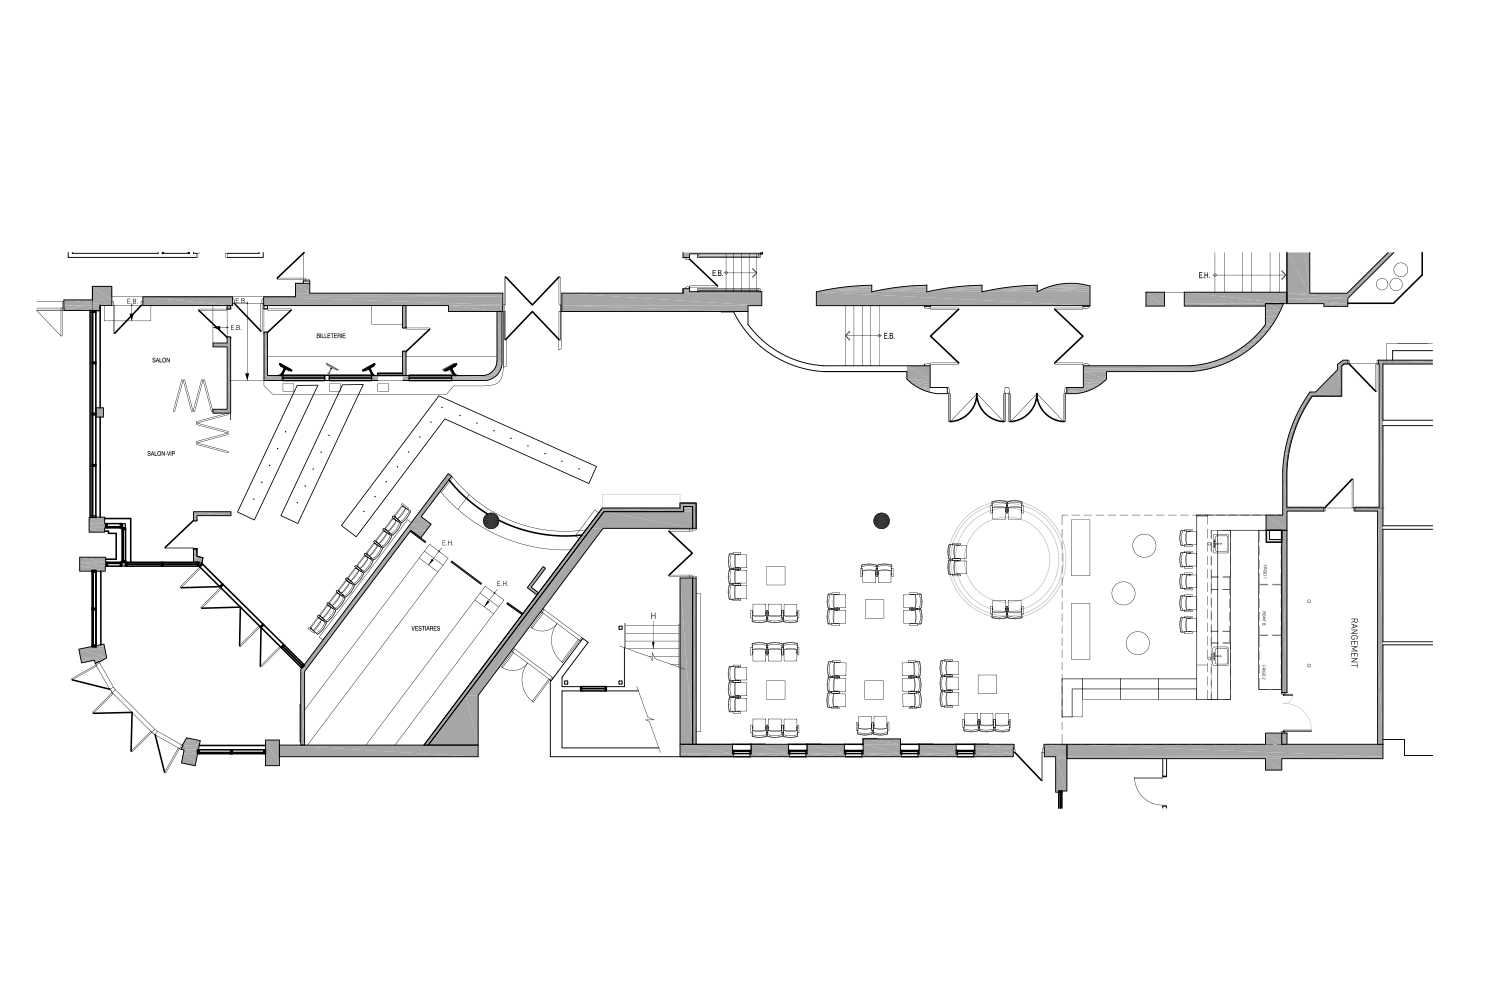 Layout plan of the lobby of a theater in Laval by interior designers at La Firme